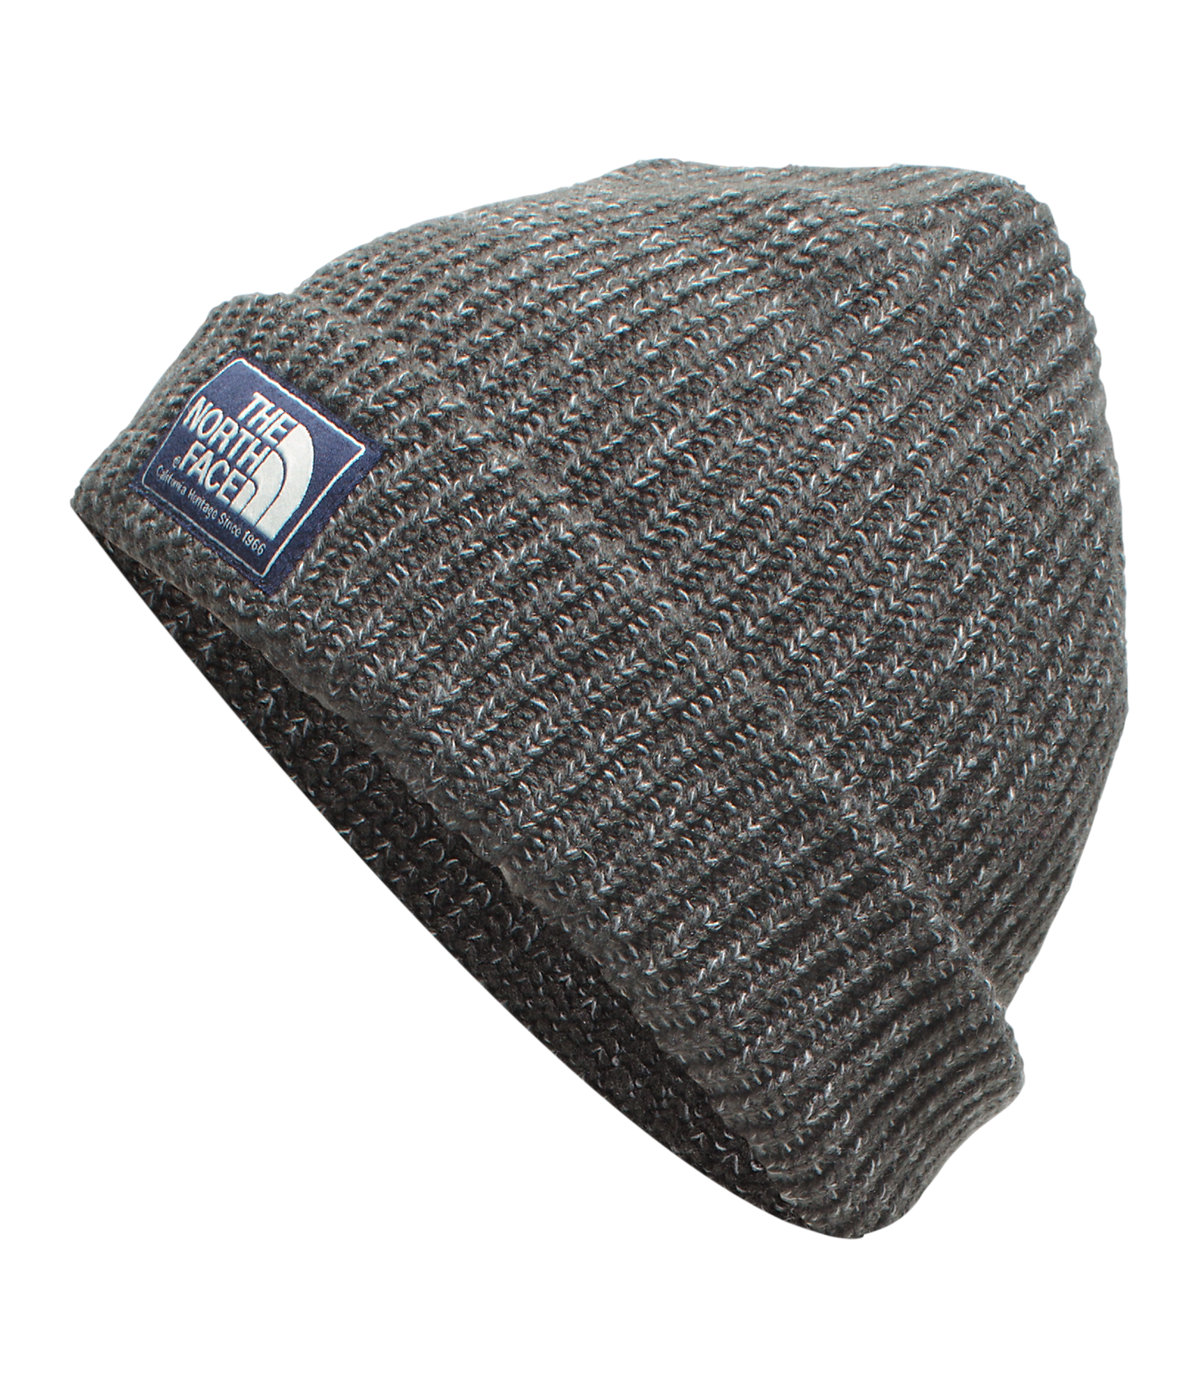 The North Face Adult Salty Dog Beanie Fontana Sports